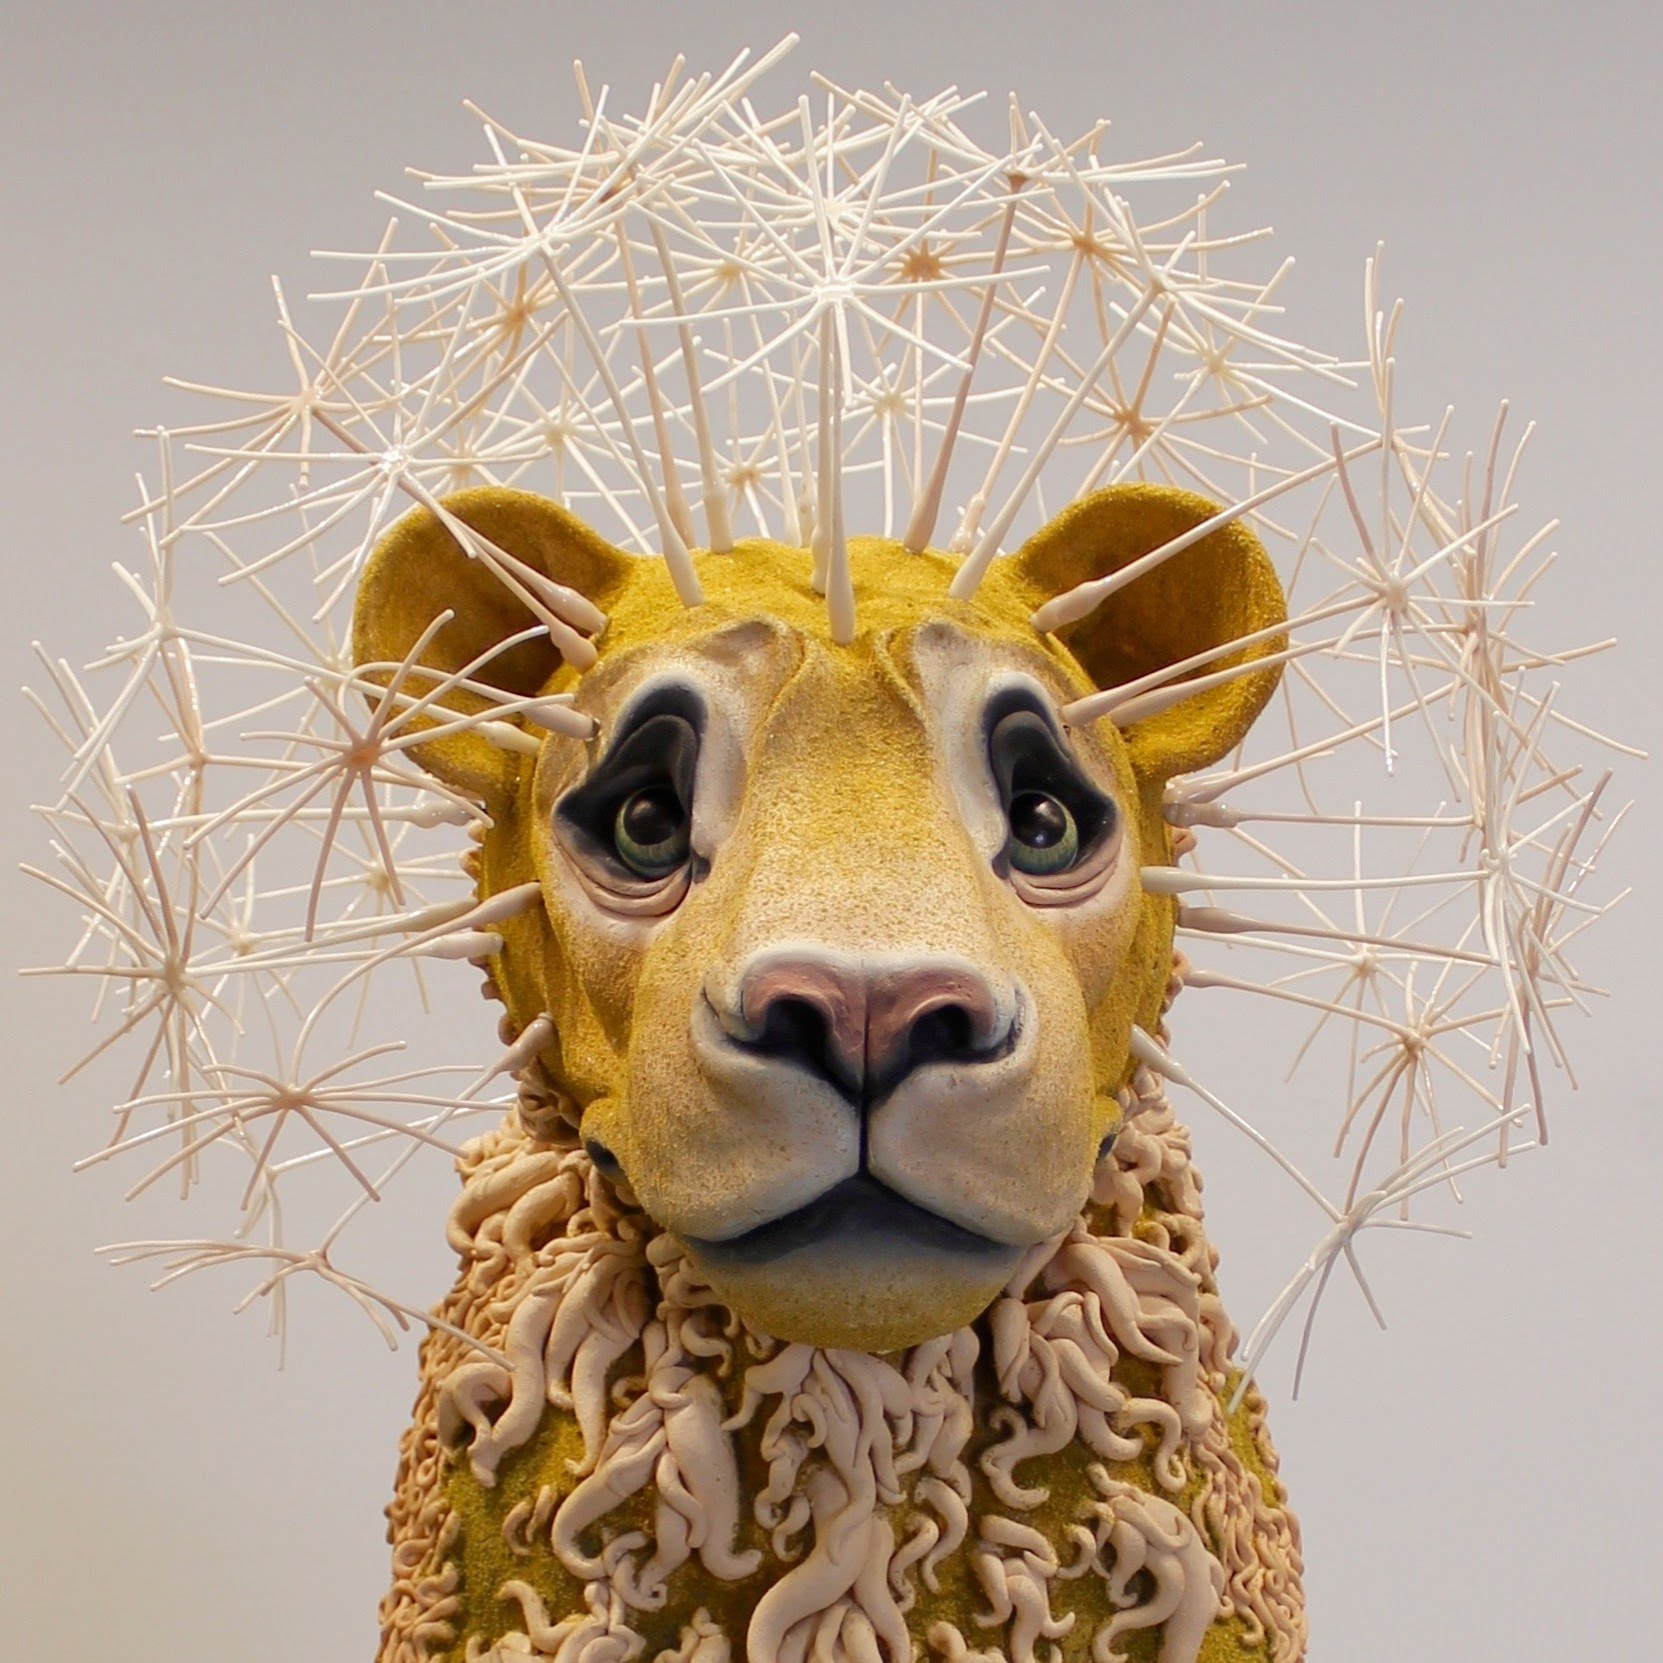 Ceramic sculpture of a lion by Suzanne Head thumbnail